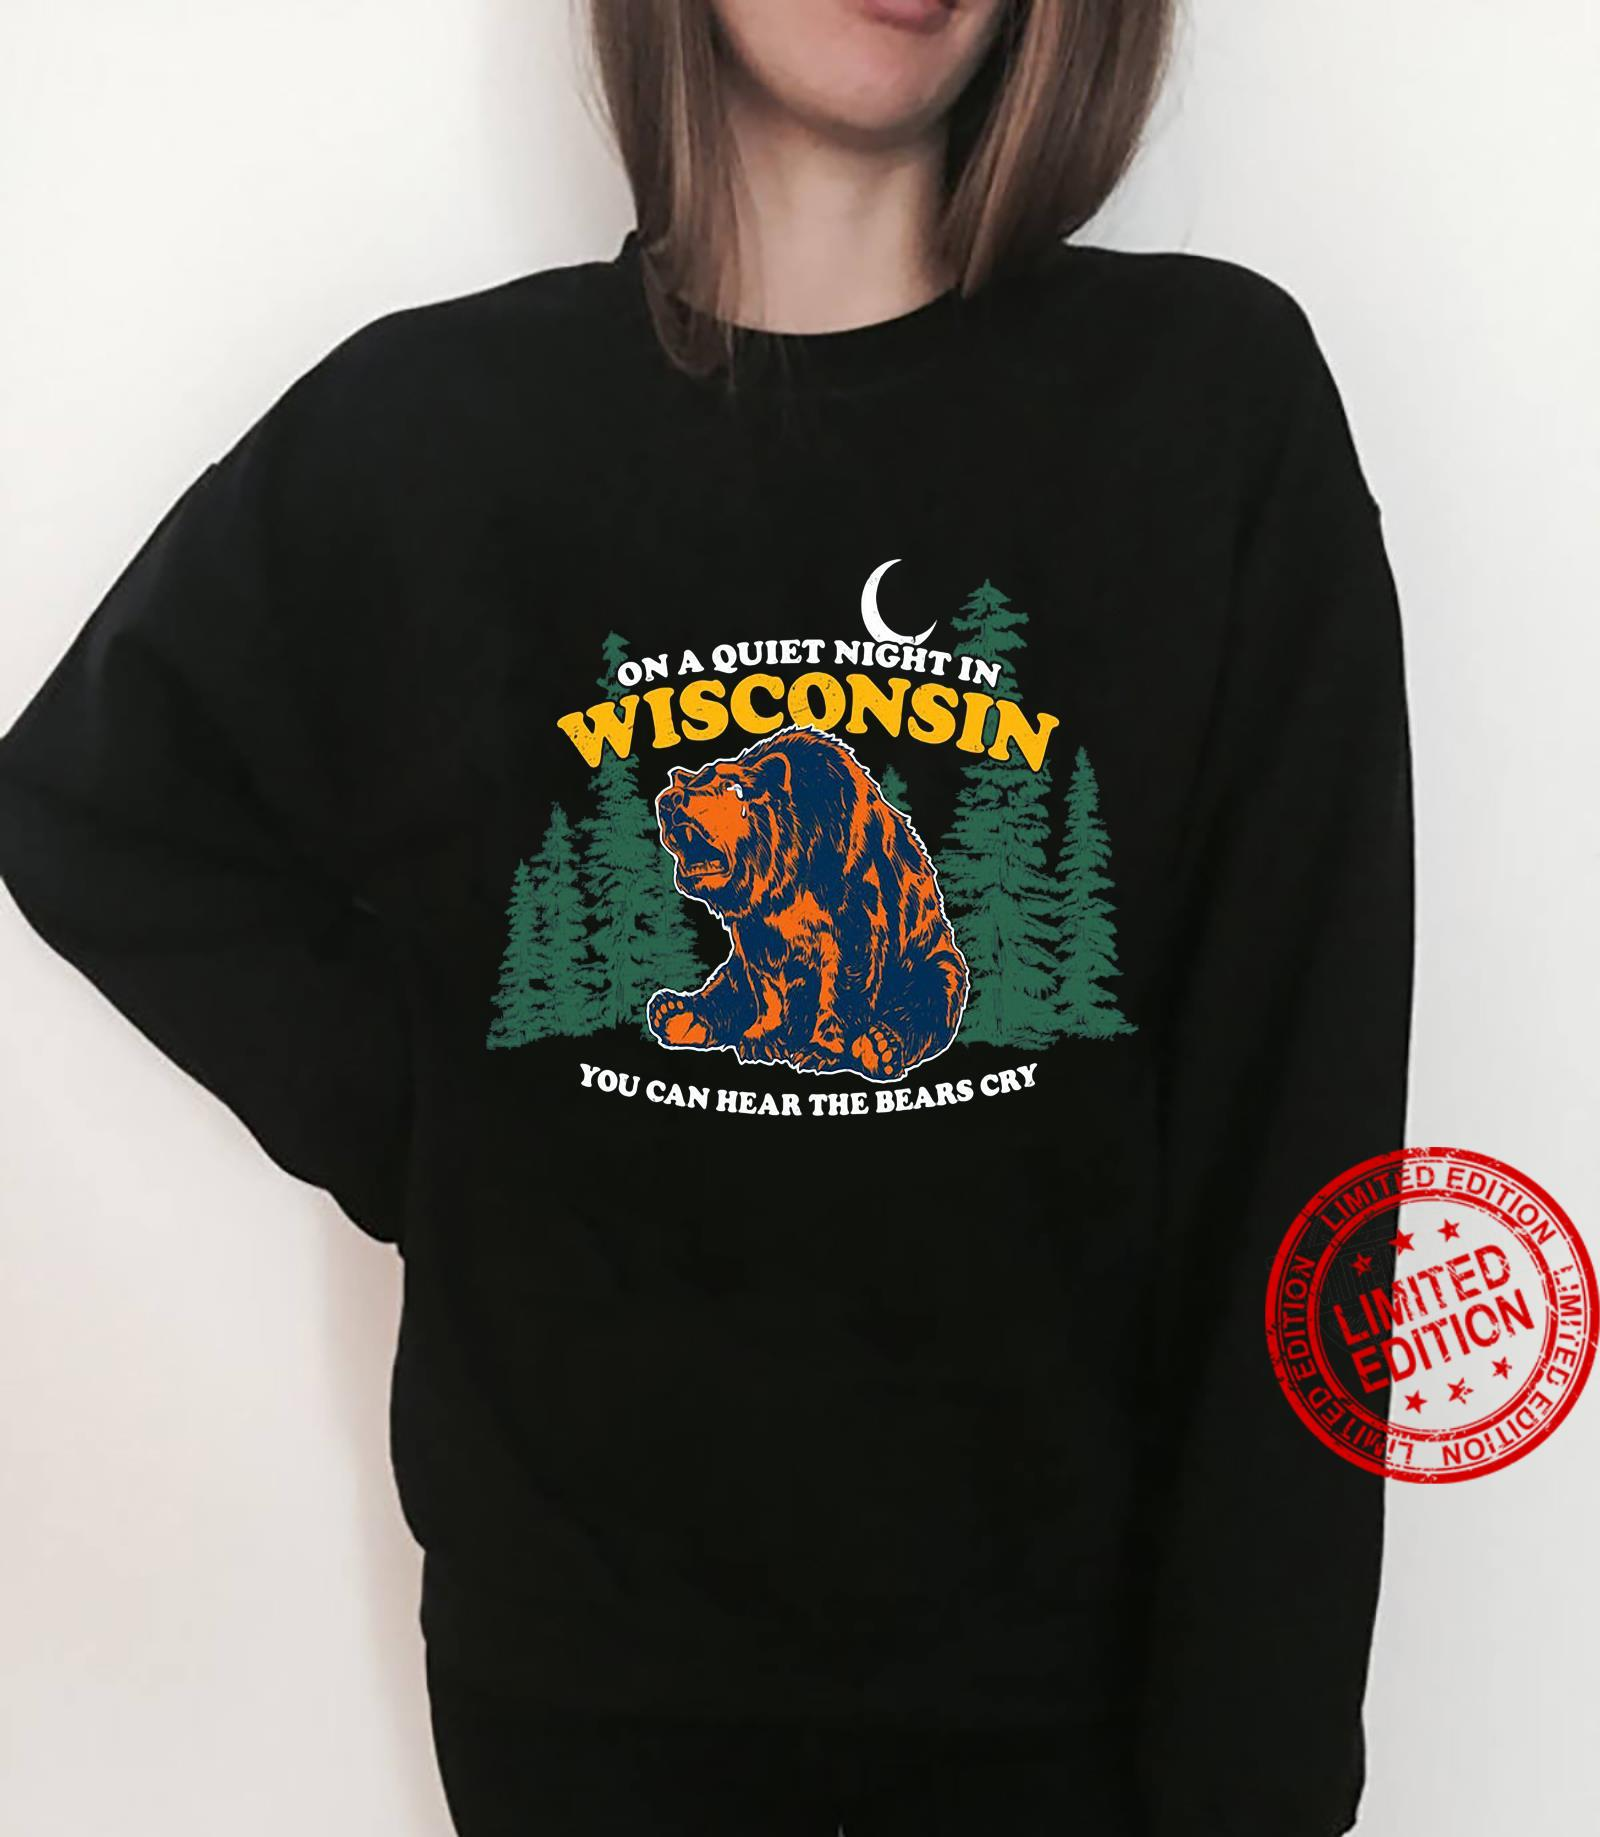 On A Quiet Night In Wisconsin You Can Hear The Bears Cry Men T-Shirt sweater